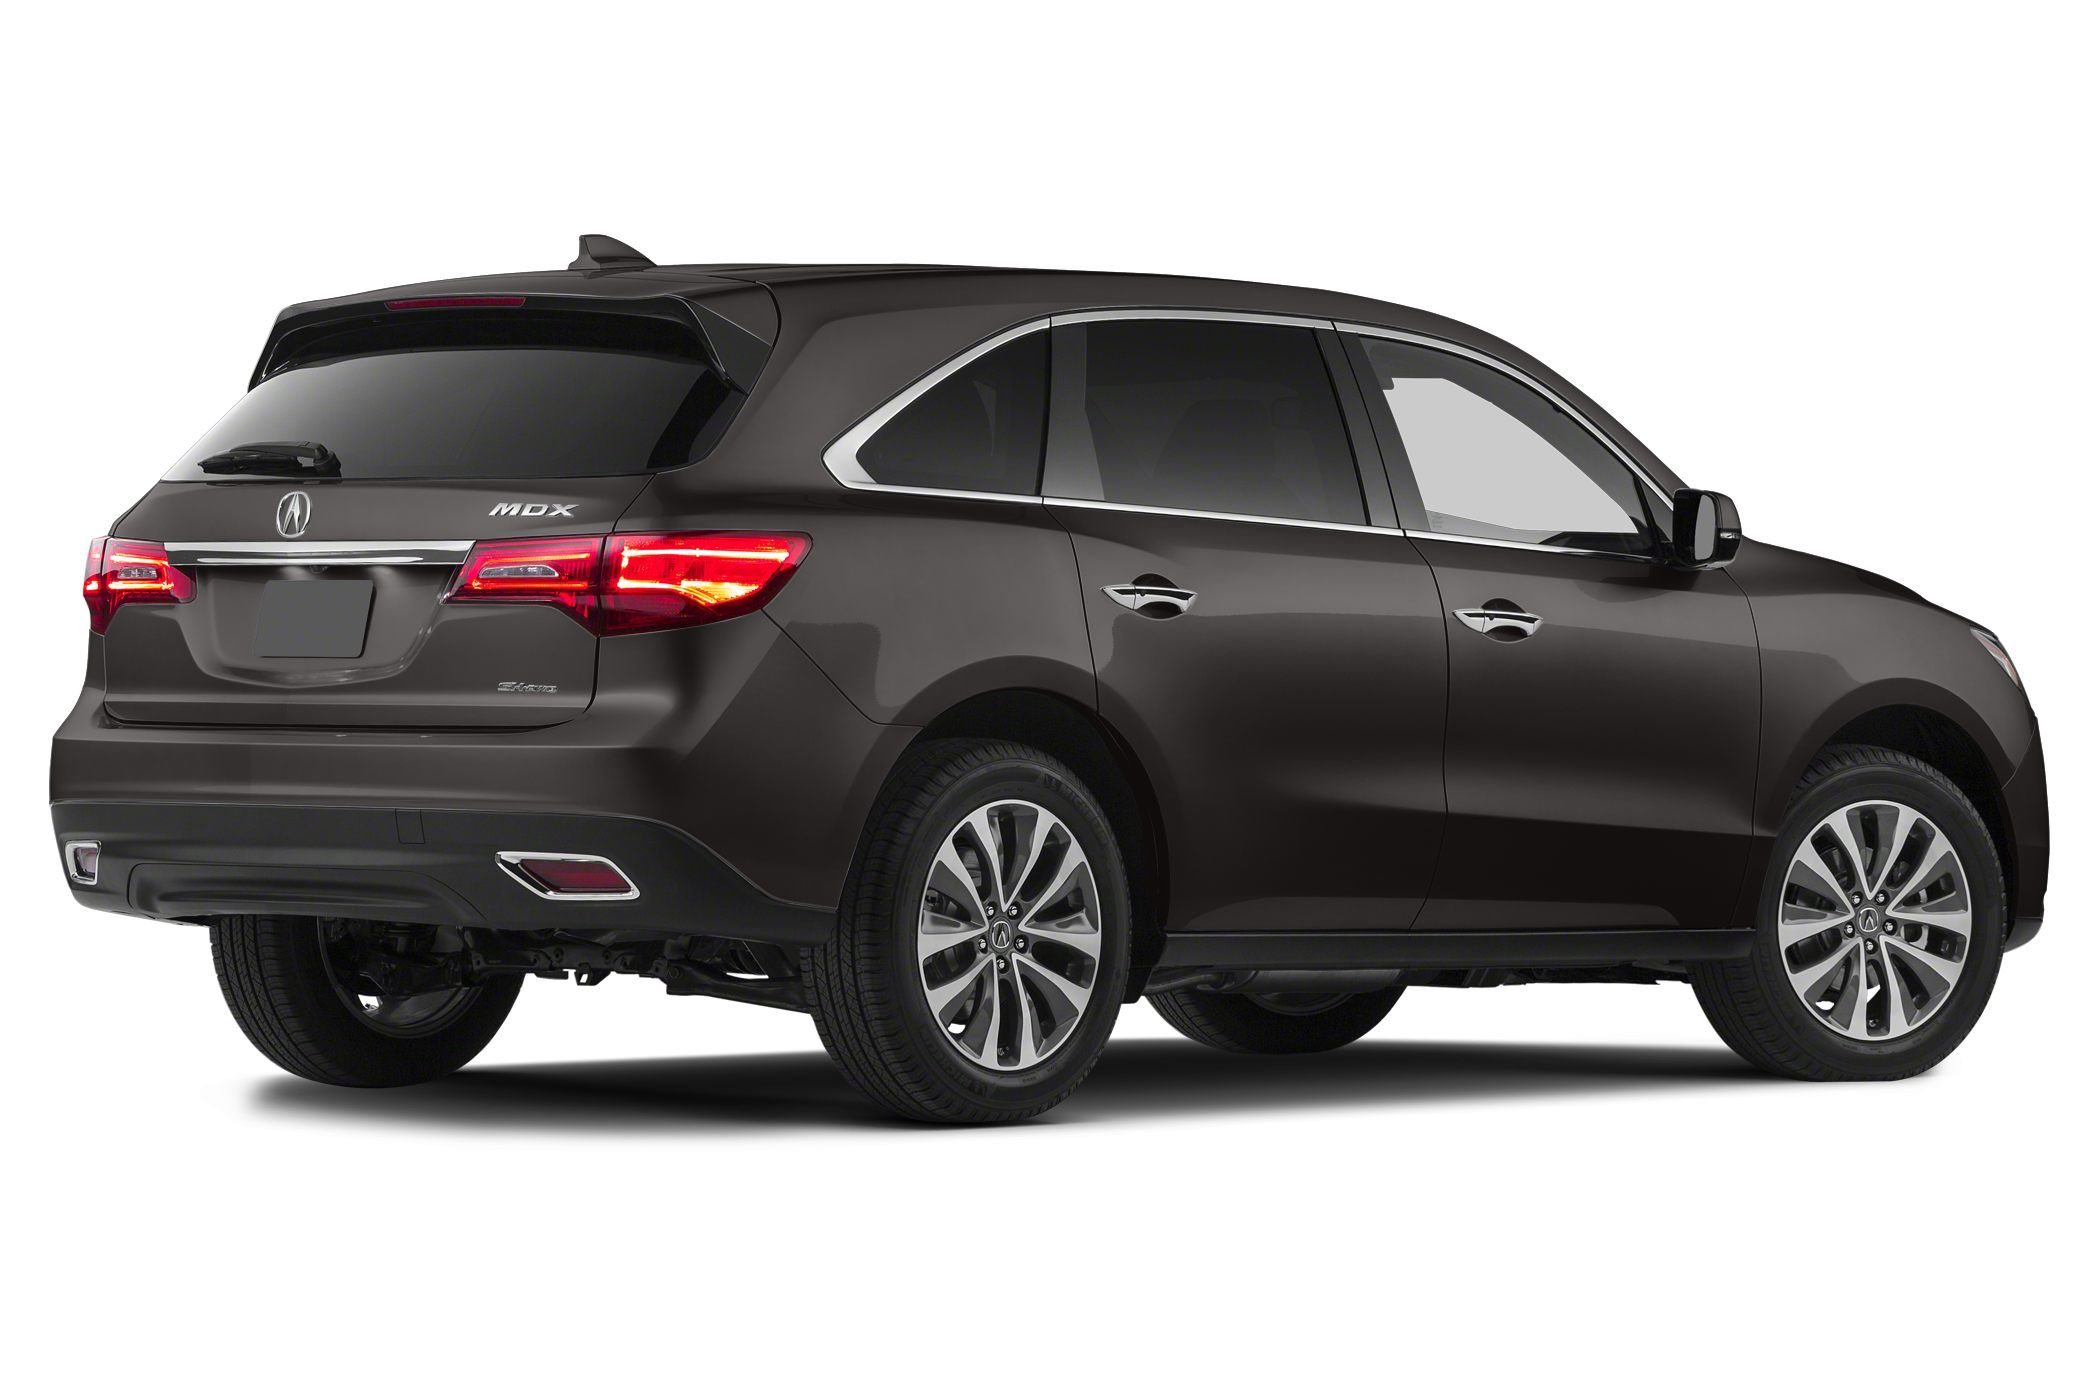 2014 Acura MDX Review Wallpapers Full HD http